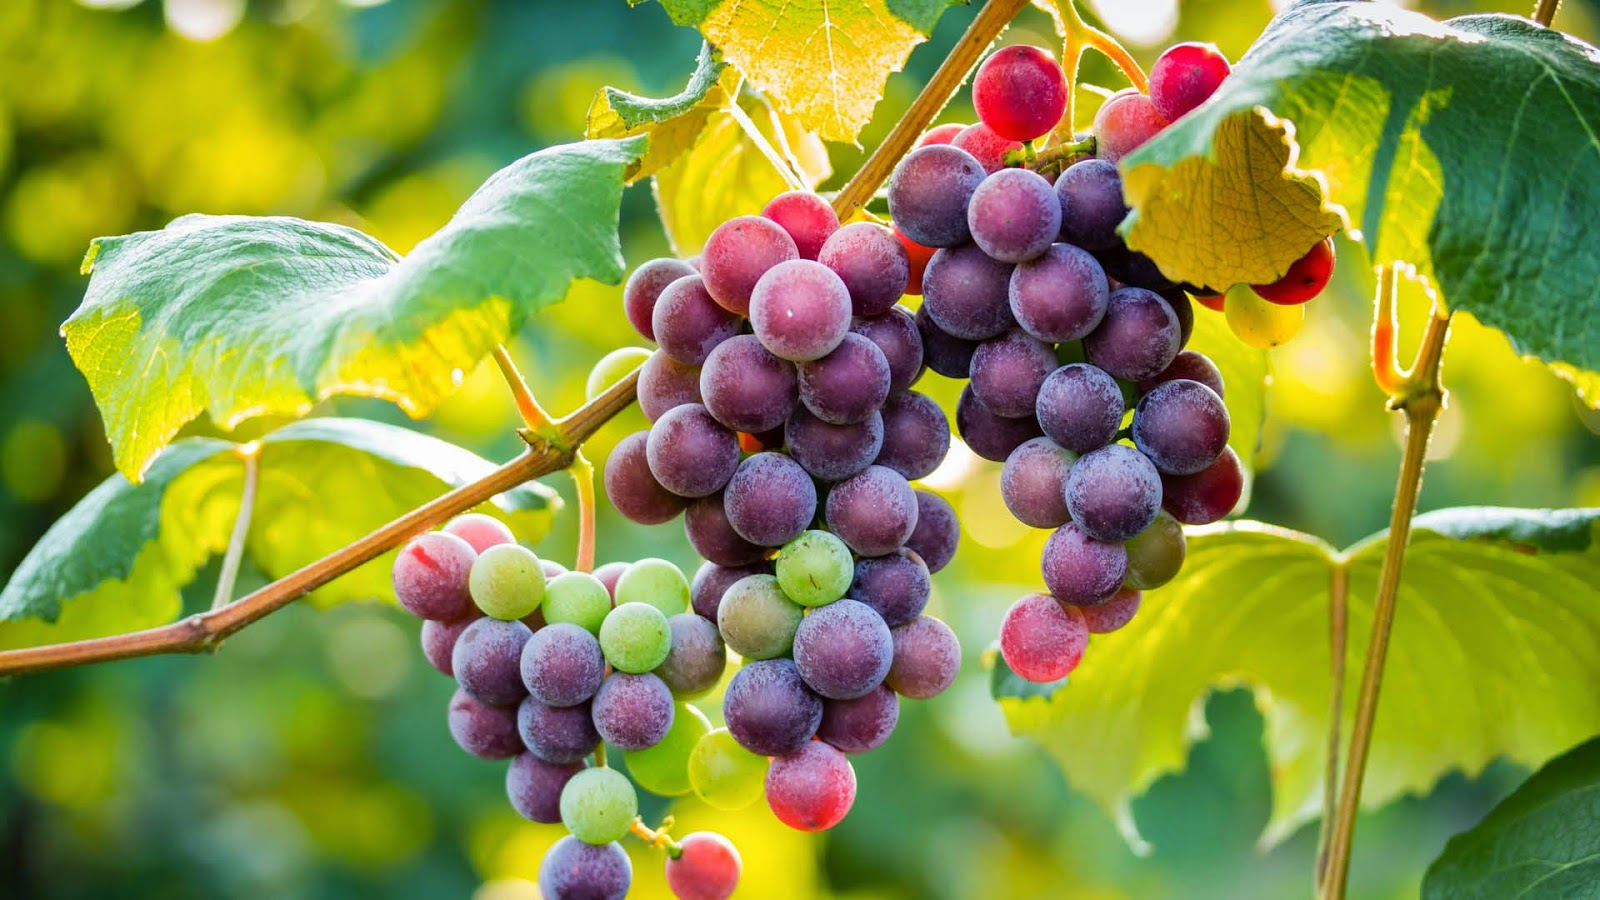 red-grapes-nice-close-up-scene